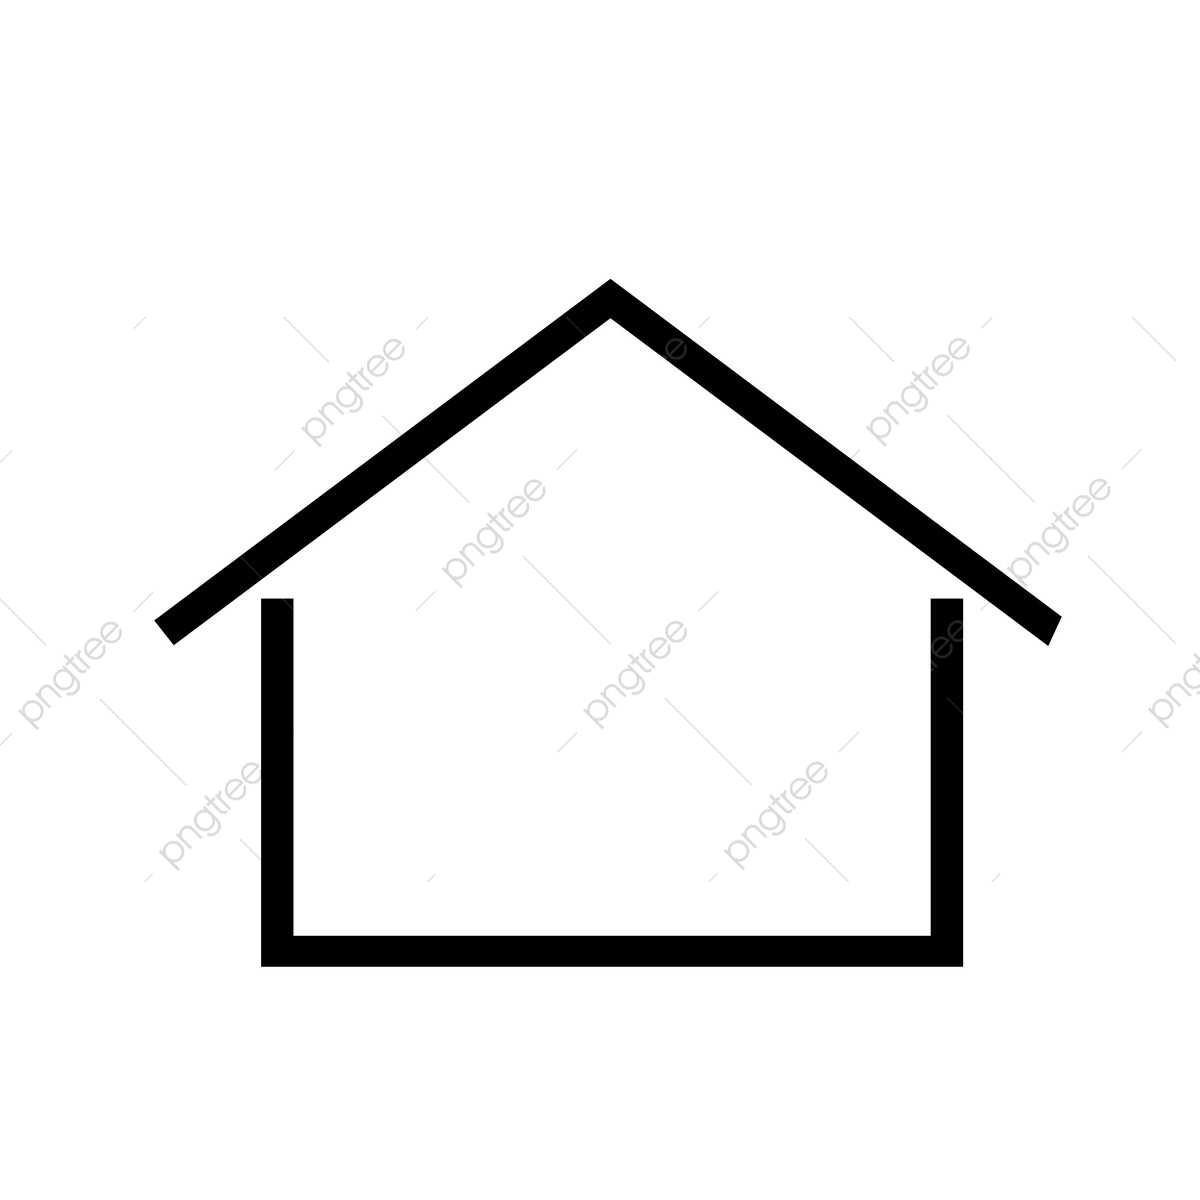 home icon png images vector and psd files free download on pngtree https pngtree com freepng home icon simple symbol 3566359 html